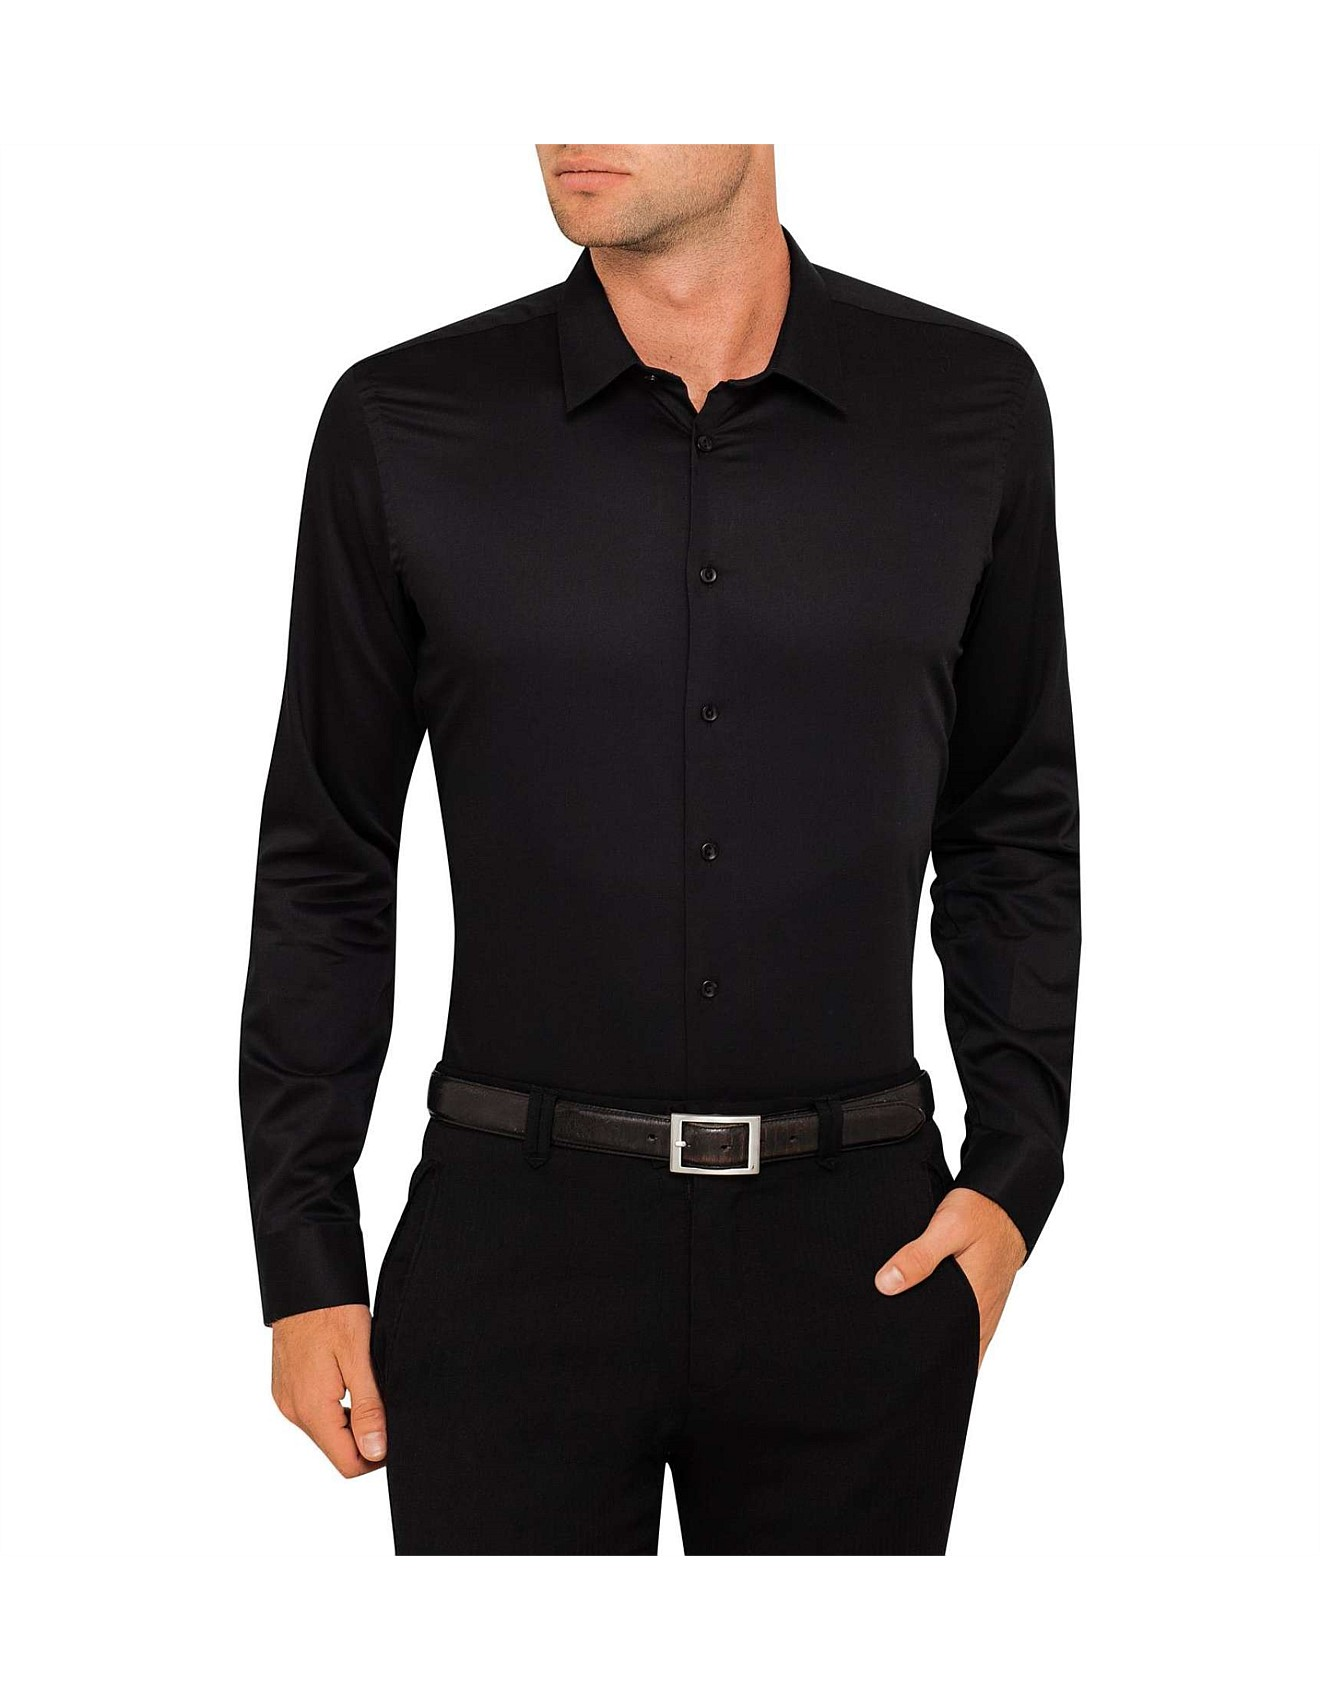 Men 39 s shirts casual shirts dress shirts david jones for Mens egyptian cotton dress shirts